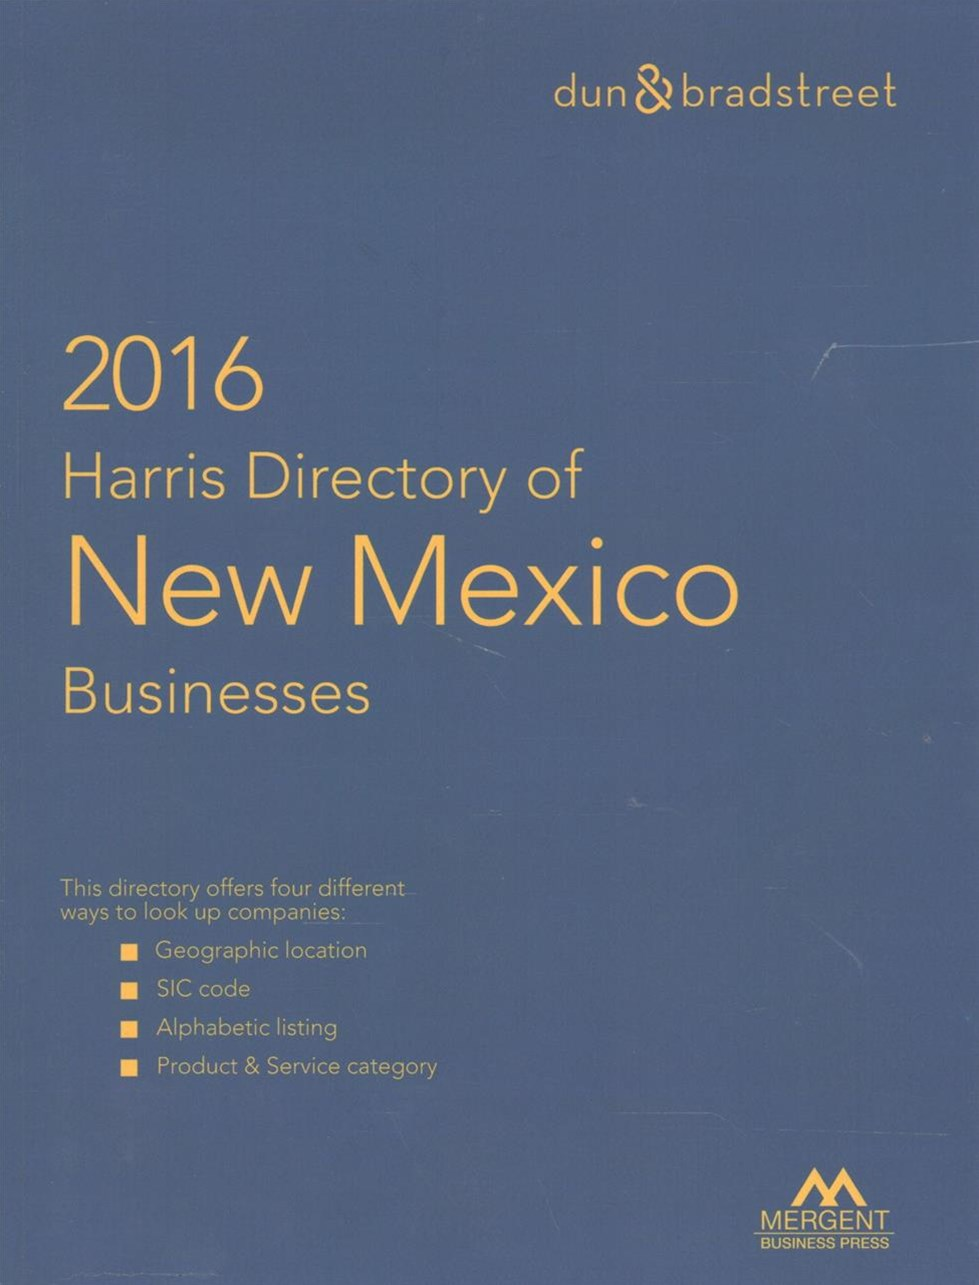 Harris Directory of New Mexico Business 2016